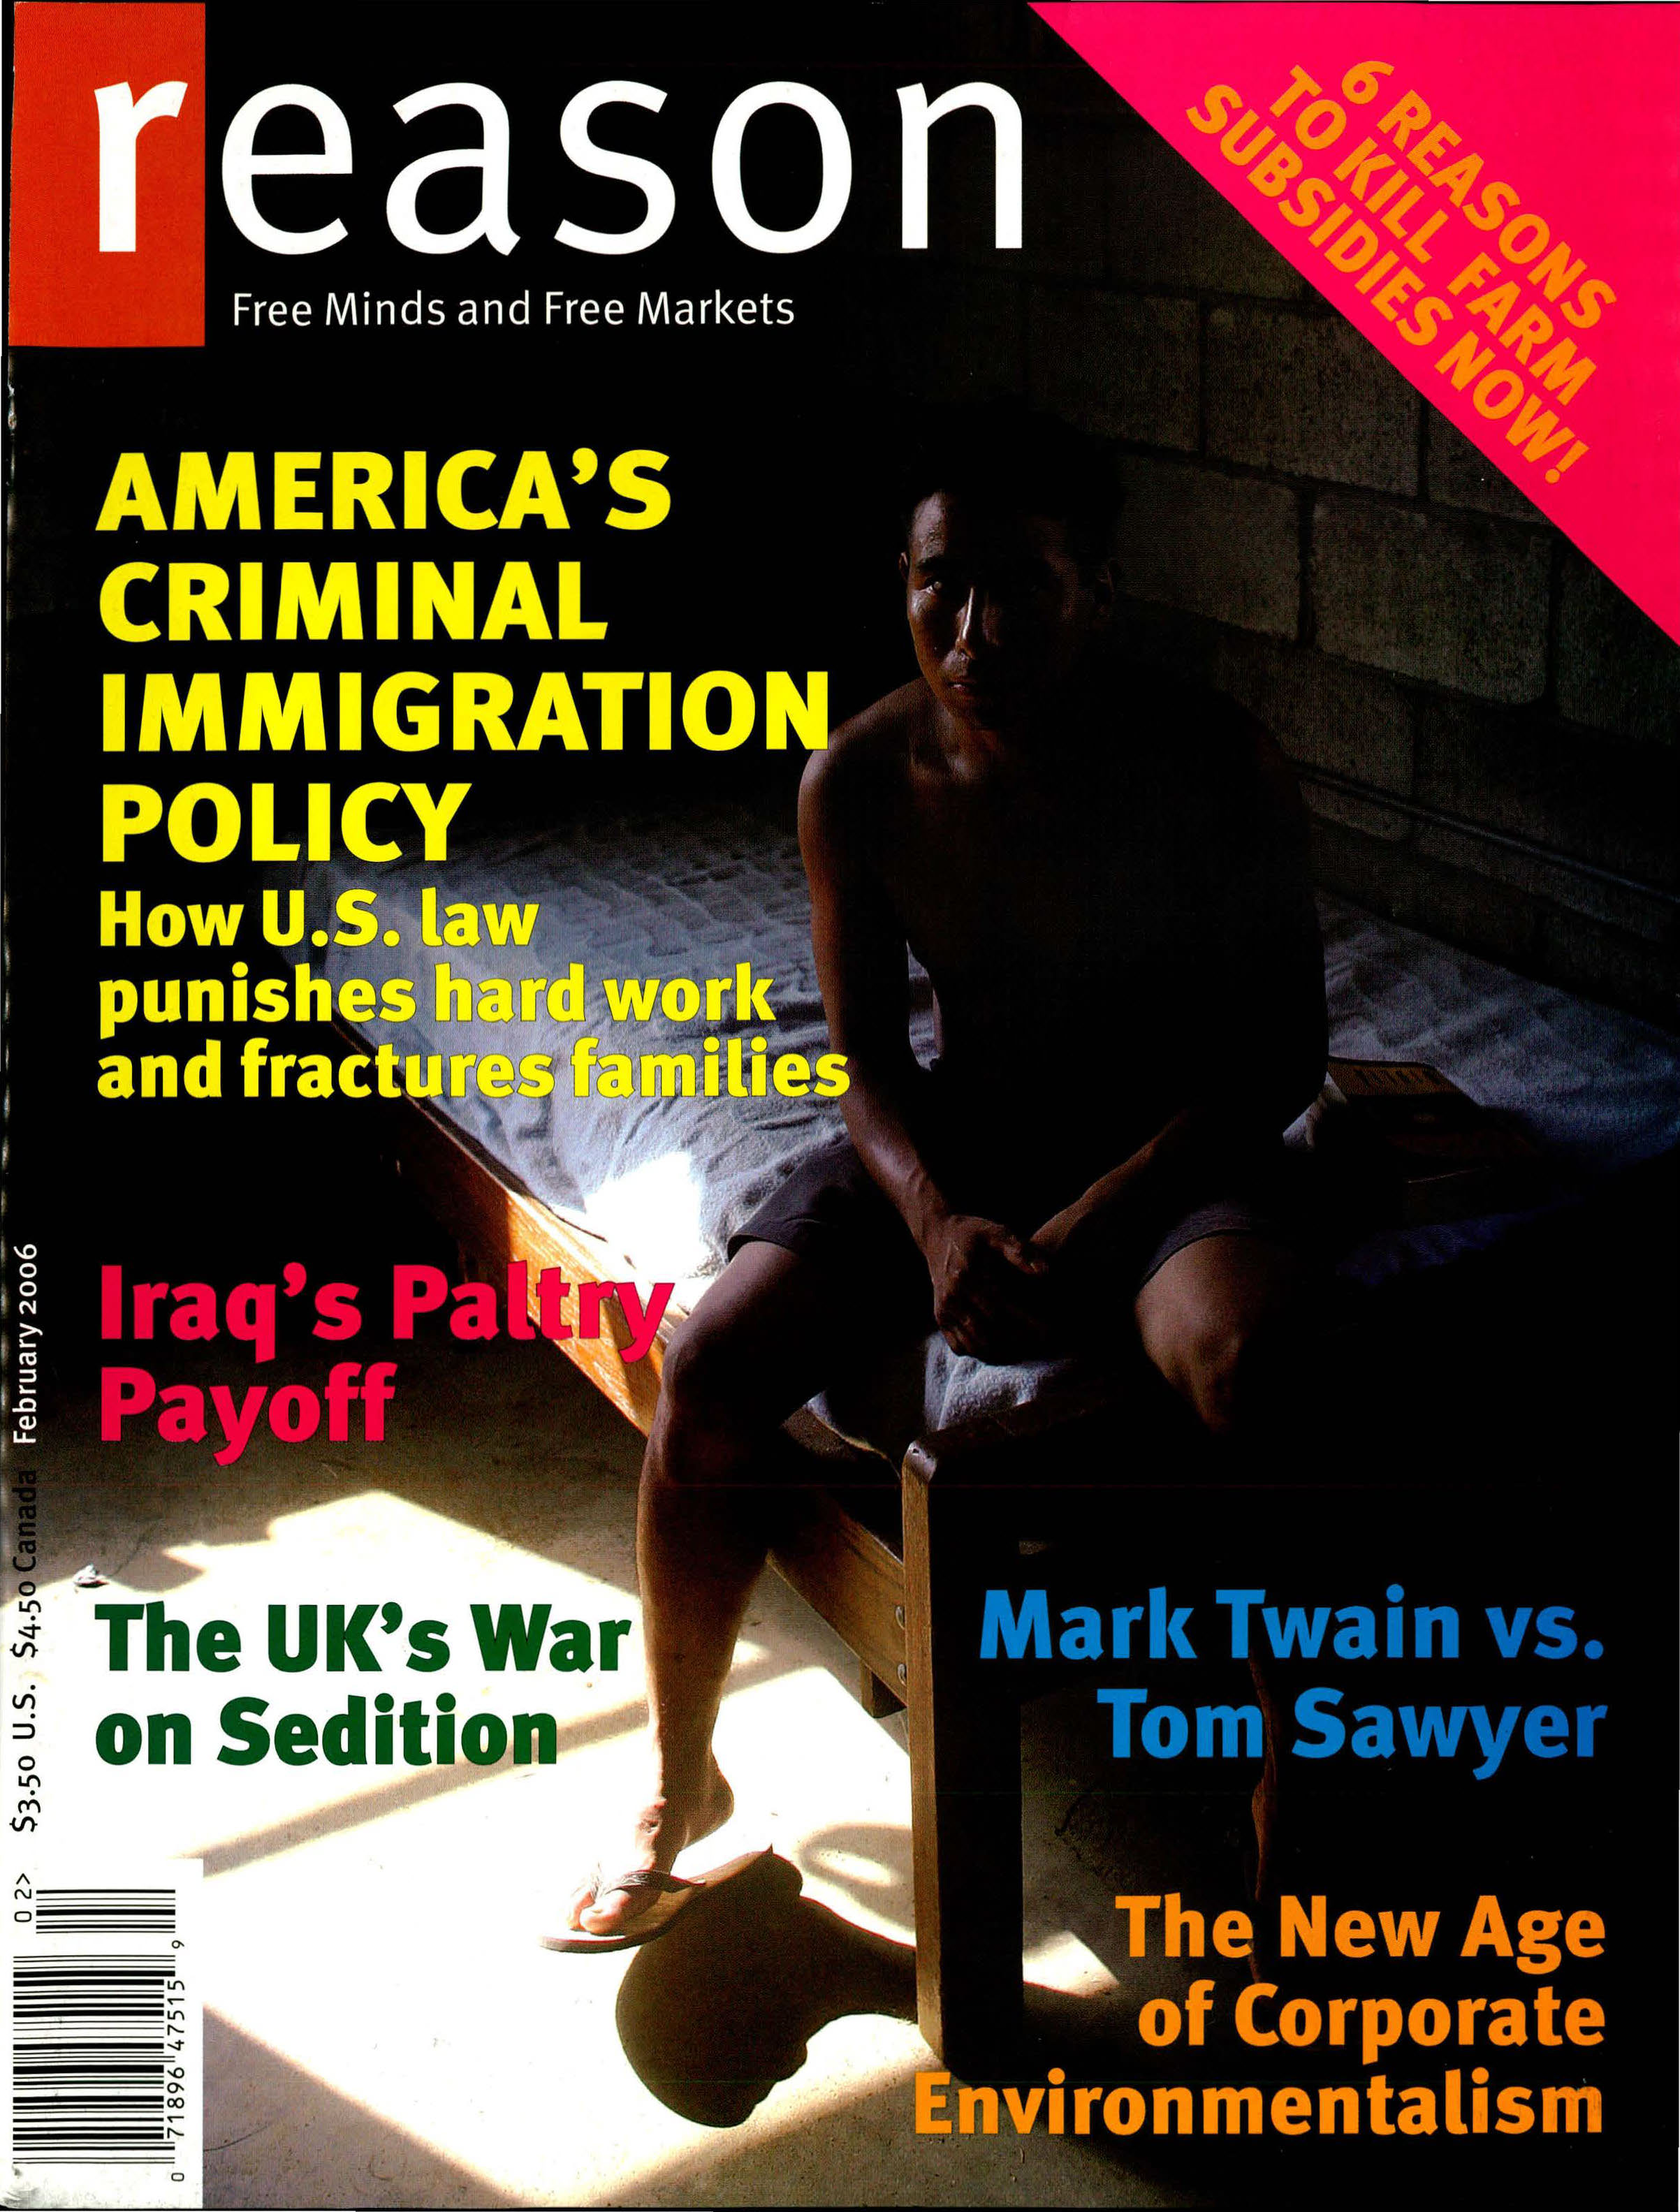 Reason Magazine, February 2006 cover image